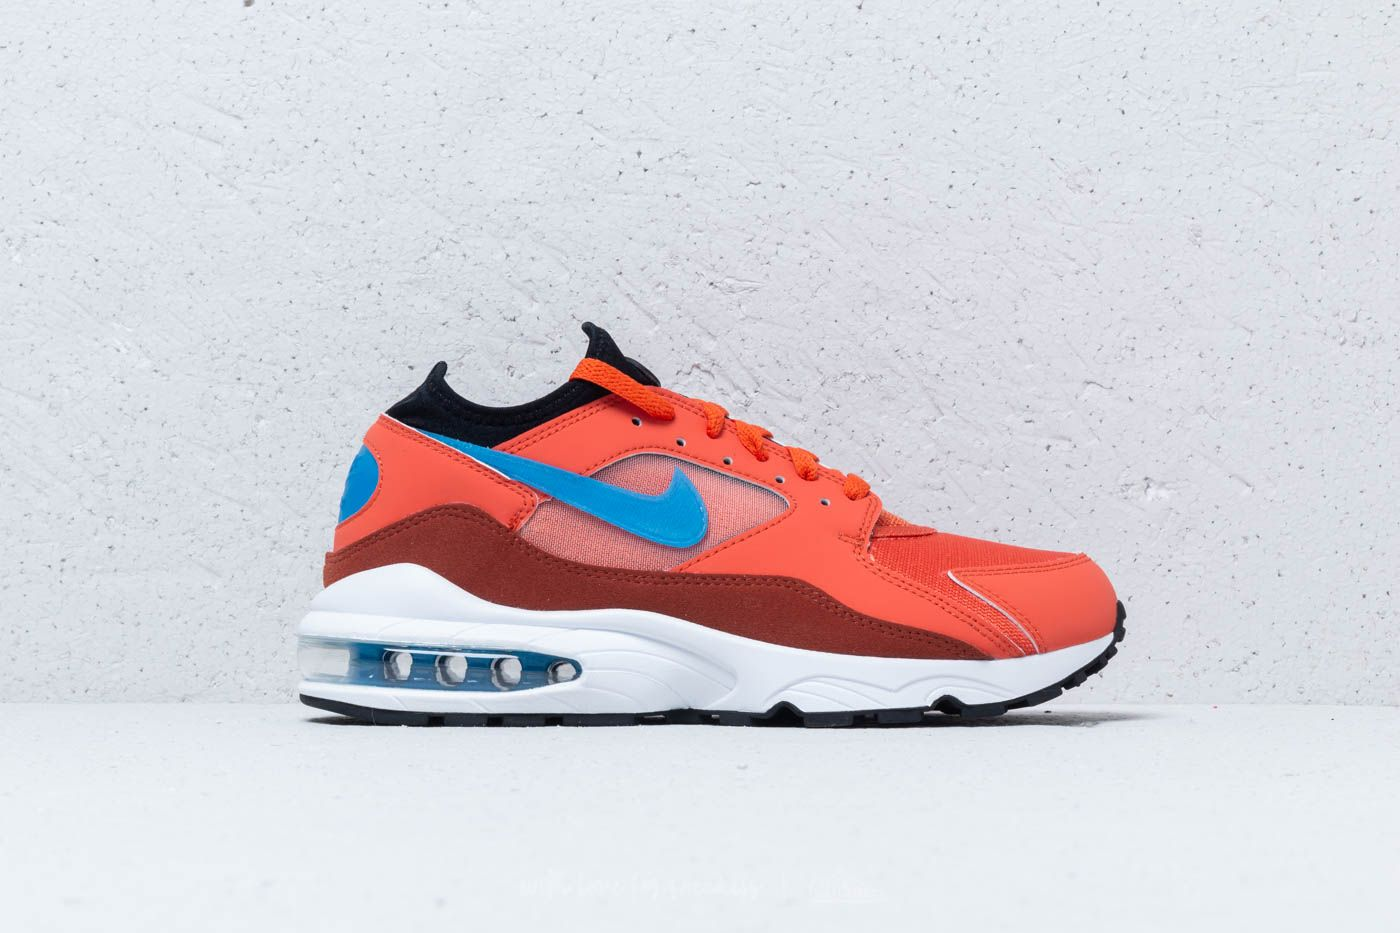 100% authentic b29d4 2e1a7 Nike Air Max 93 Vintage Coral Blue Nebula at a great price 143 € buy